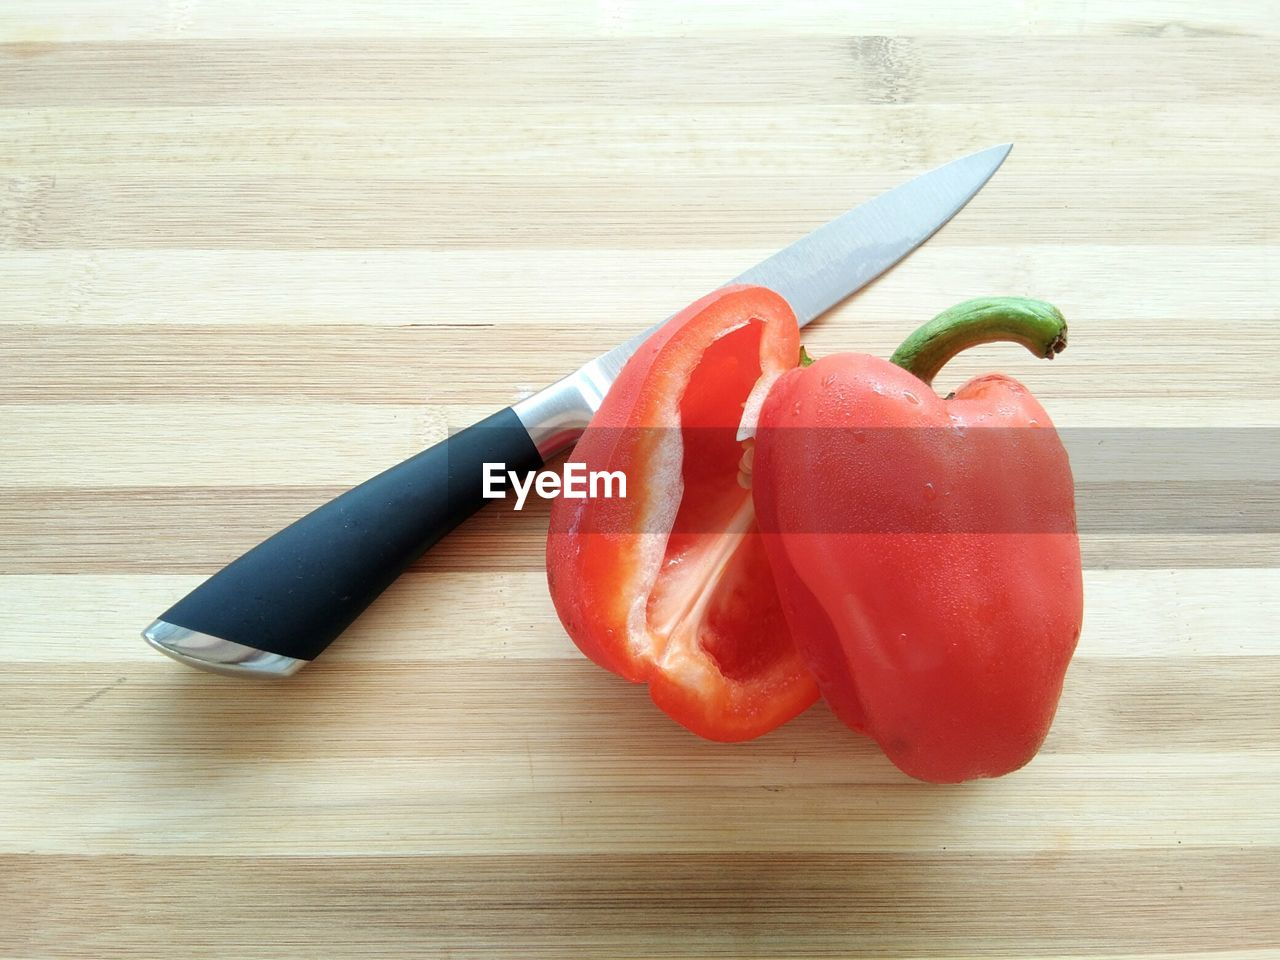 food and drink, food, table, healthy eating, pepper, red, still life, vegetable, wellbeing, freshness, cutting board, kitchen knife, indoors, wood - material, high angle view, no people, close-up, chili pepper, bell pepper, knife, chopped